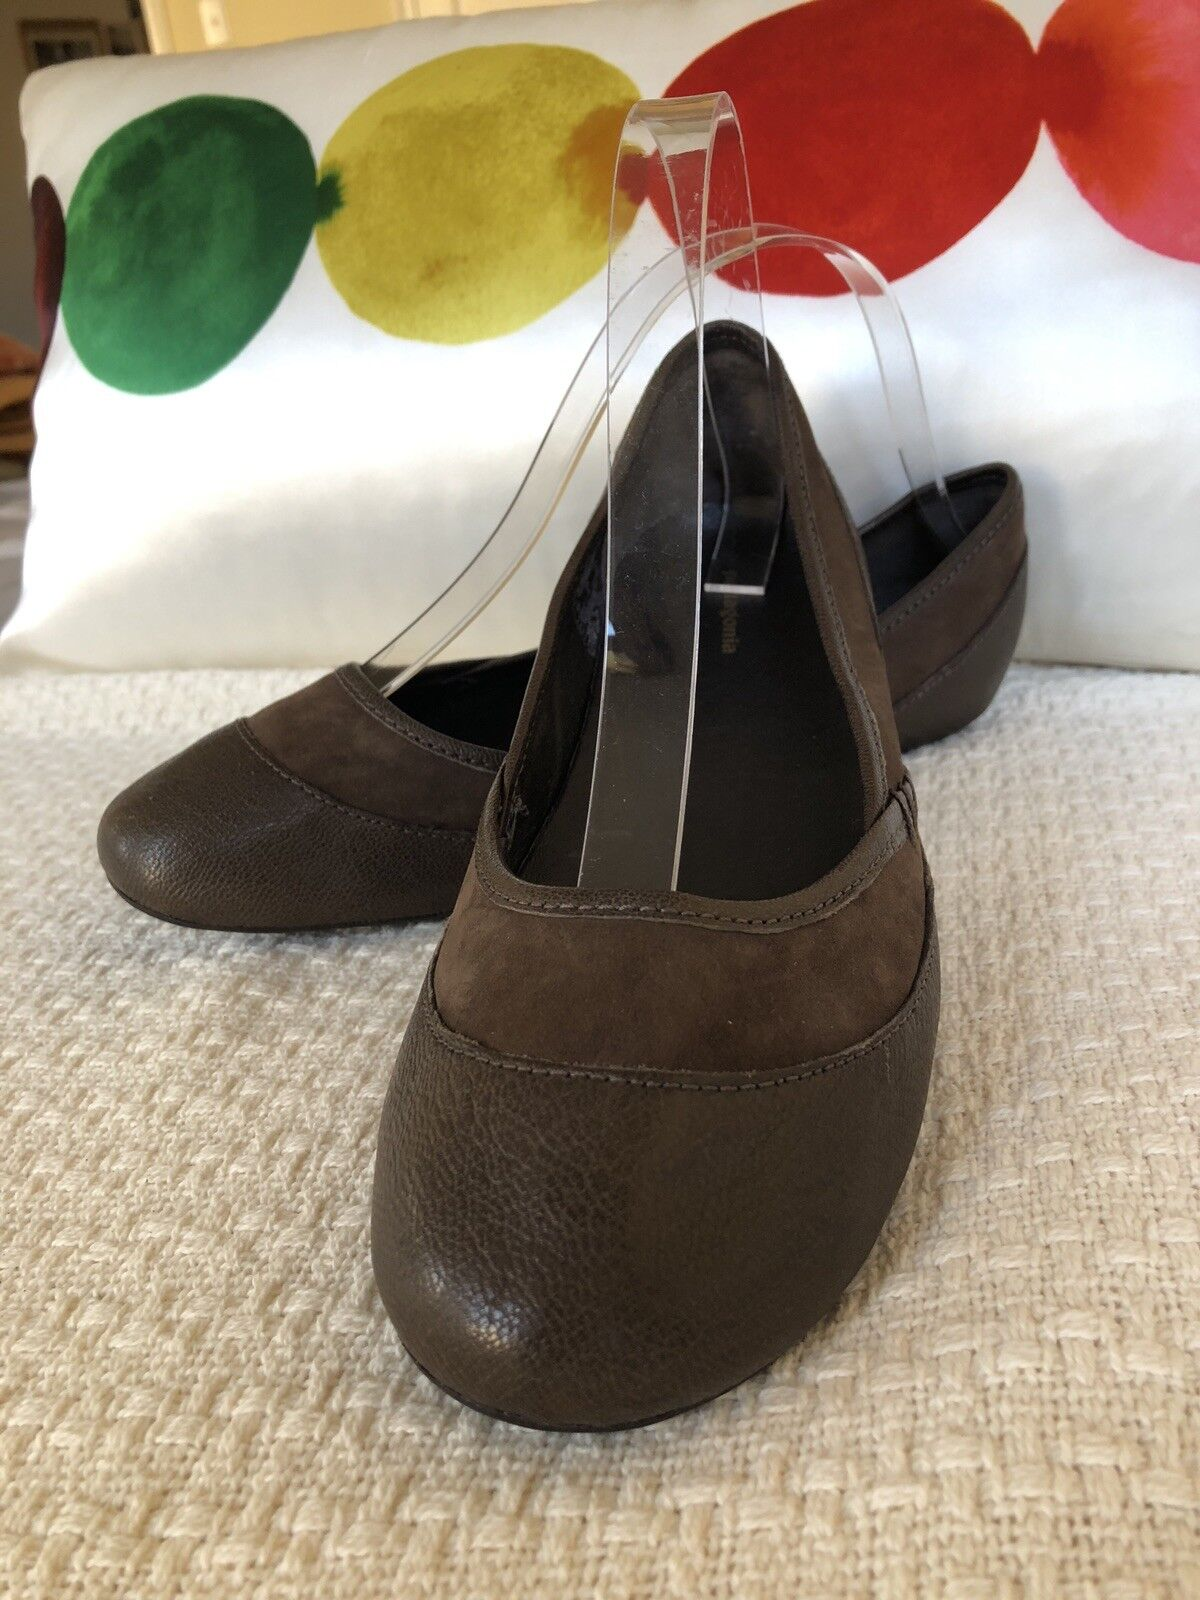 Patagonia Maha lisse Ballet Plat Chaussures Cuir Daim Marron Taille 7 US NEUF